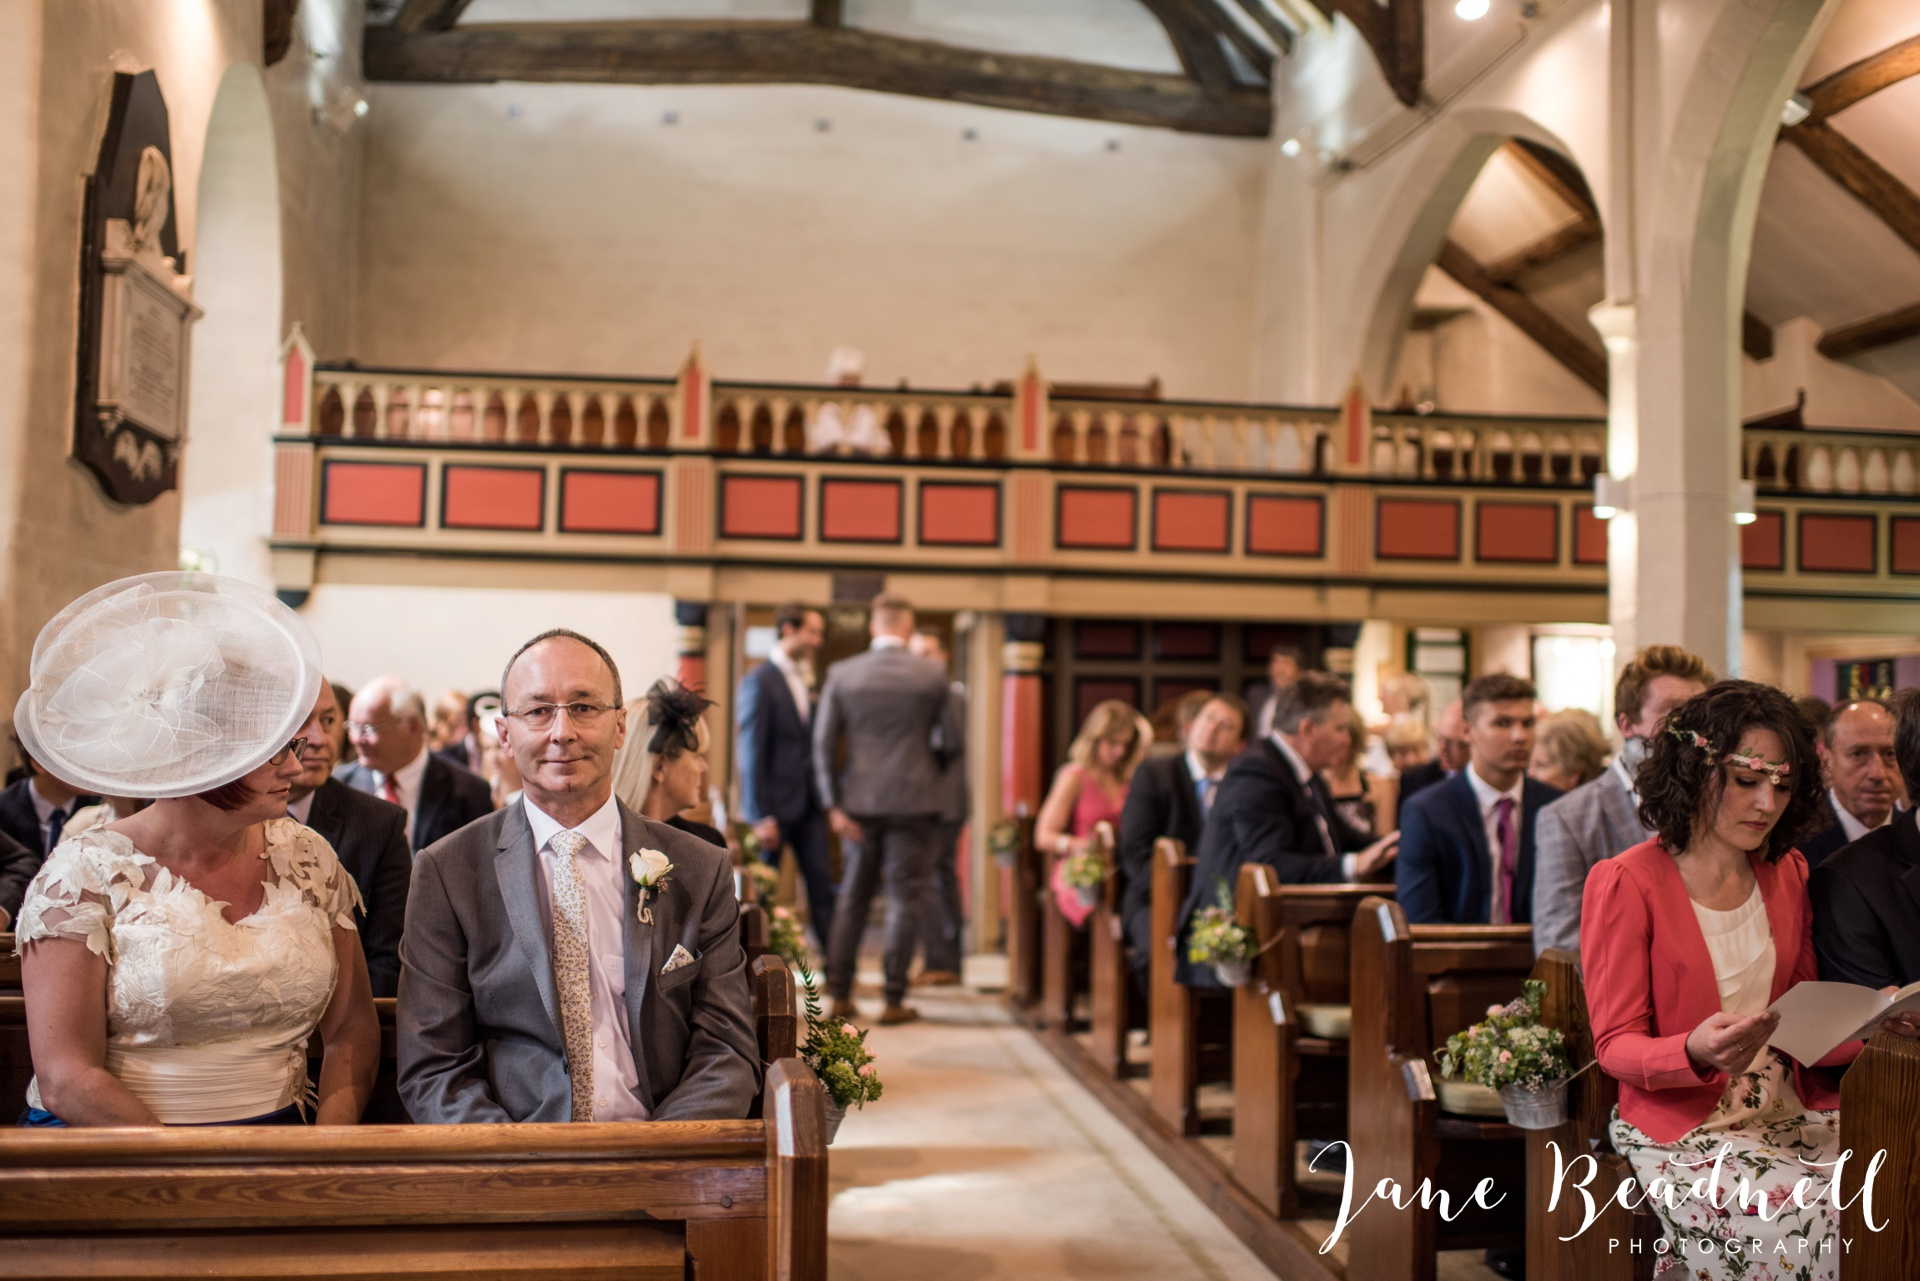 Jane Beadnell fine art wedding photographer Leeds_0024